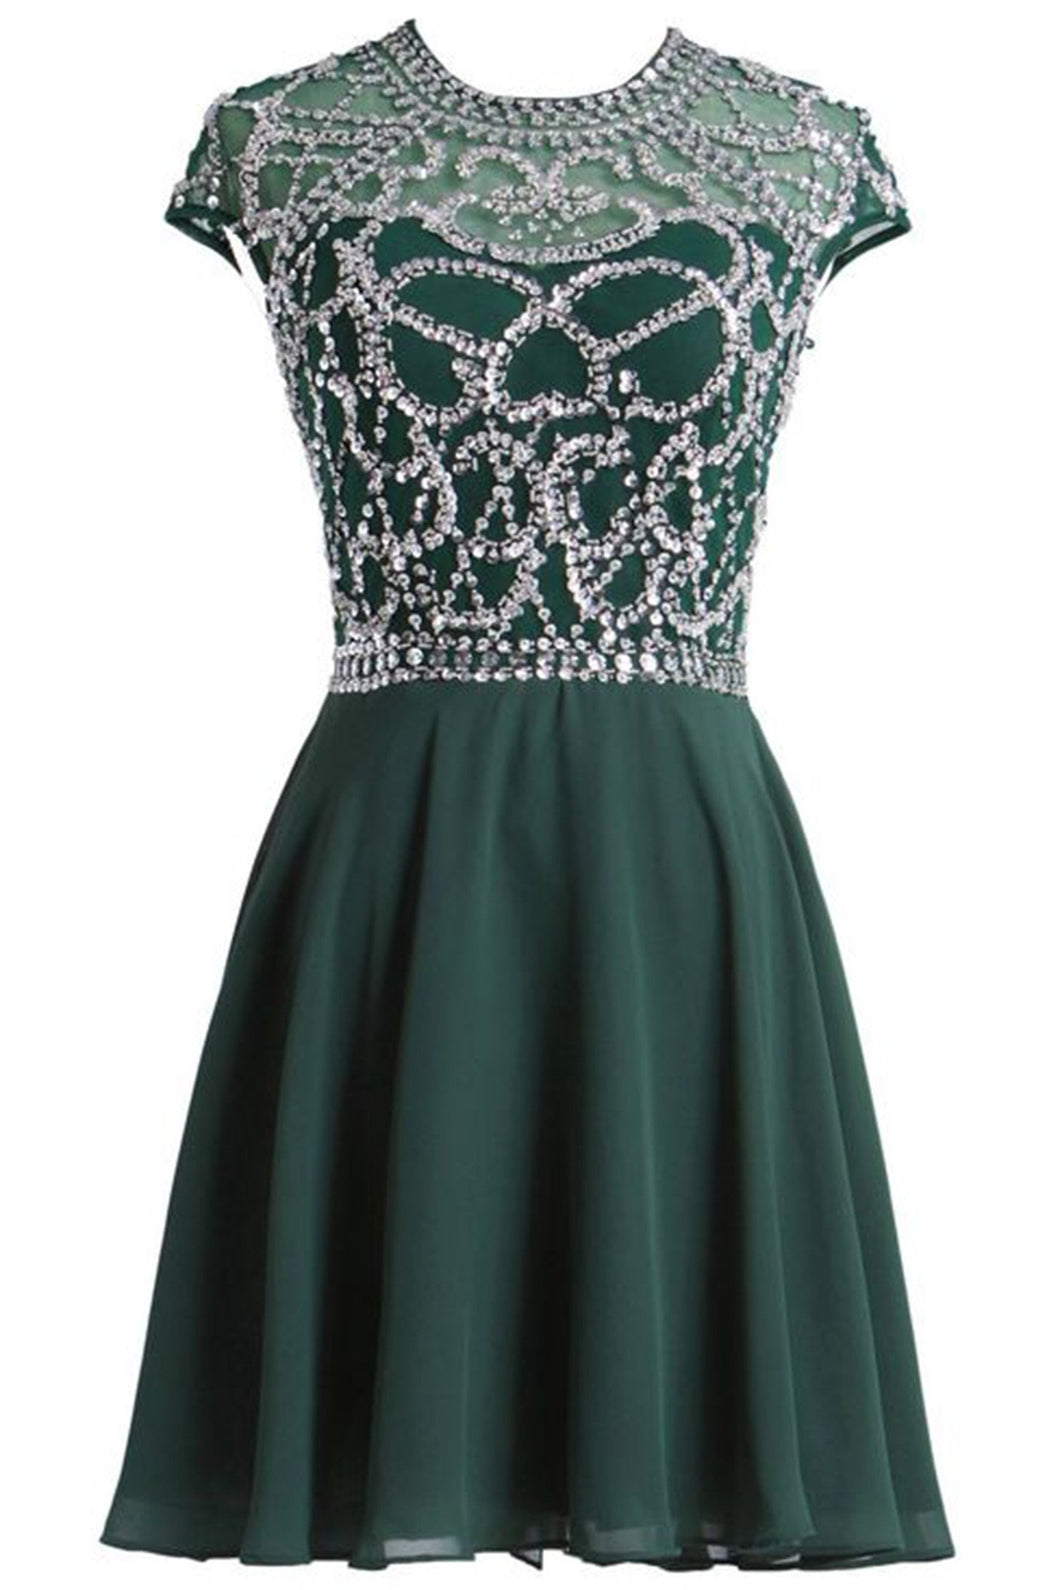 Sweet 16 Dresses | Green chiffon sequins beading A-line round neck A-line simple short prom dresses